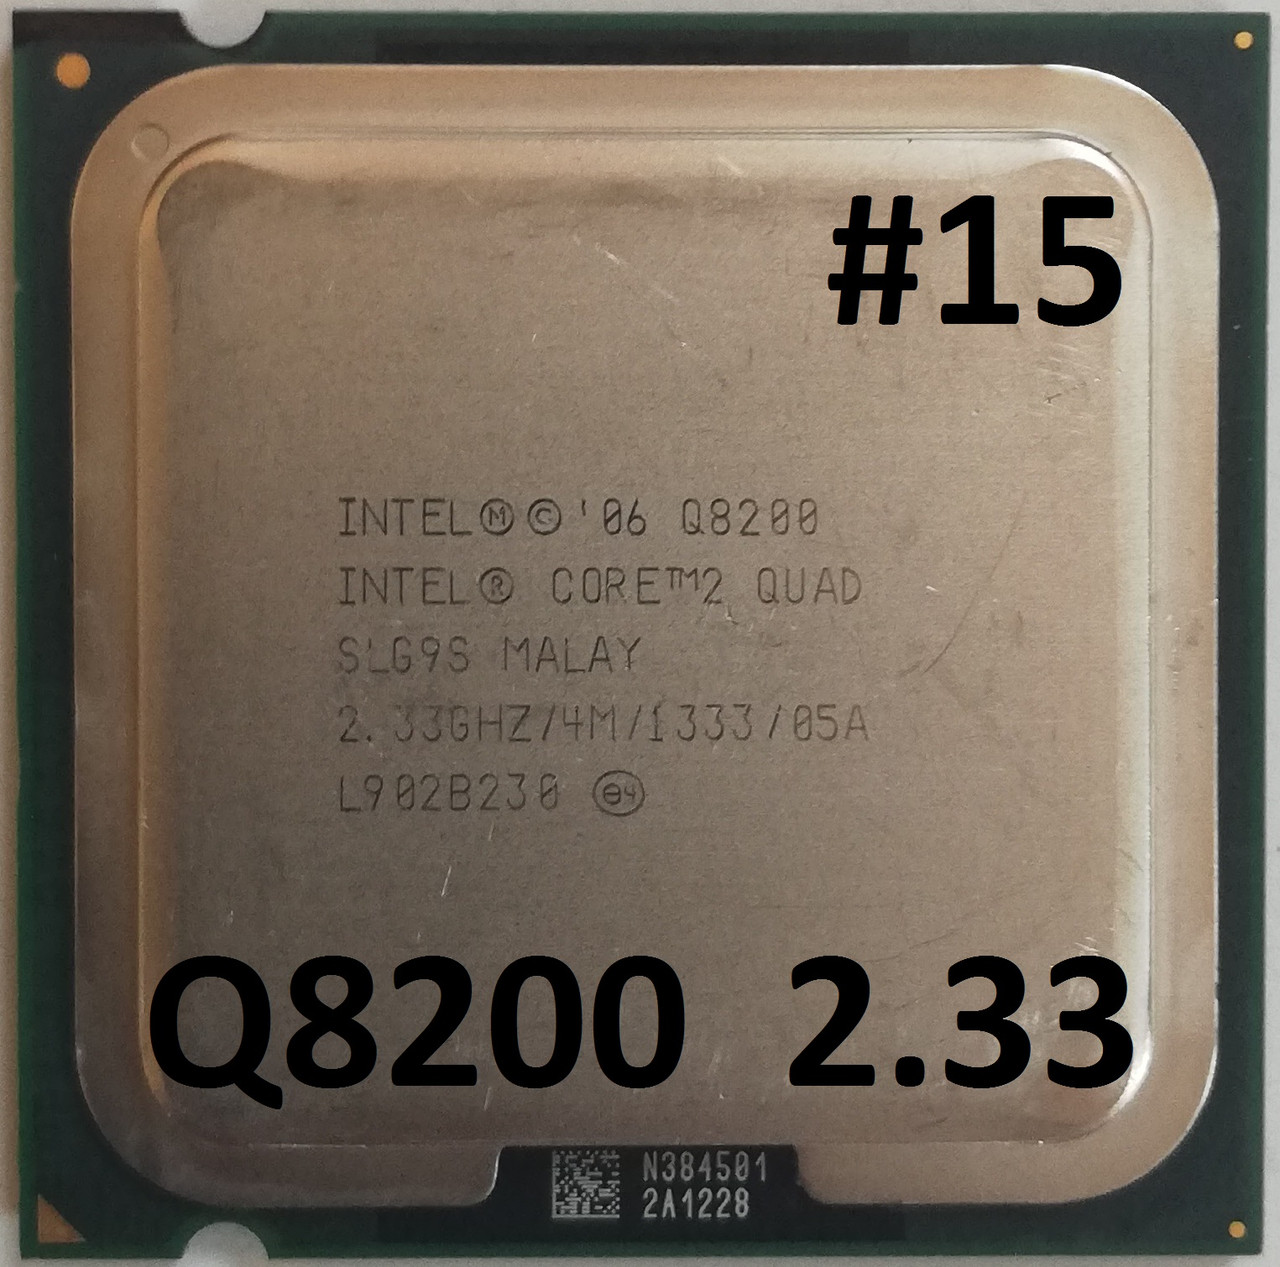 Процессор ЛОТ#15 Intel® Core™2 Quad Q8200 SLG9S  2.33GHz 4M Cache 1333 MHz FSB Socket 775 Б/У